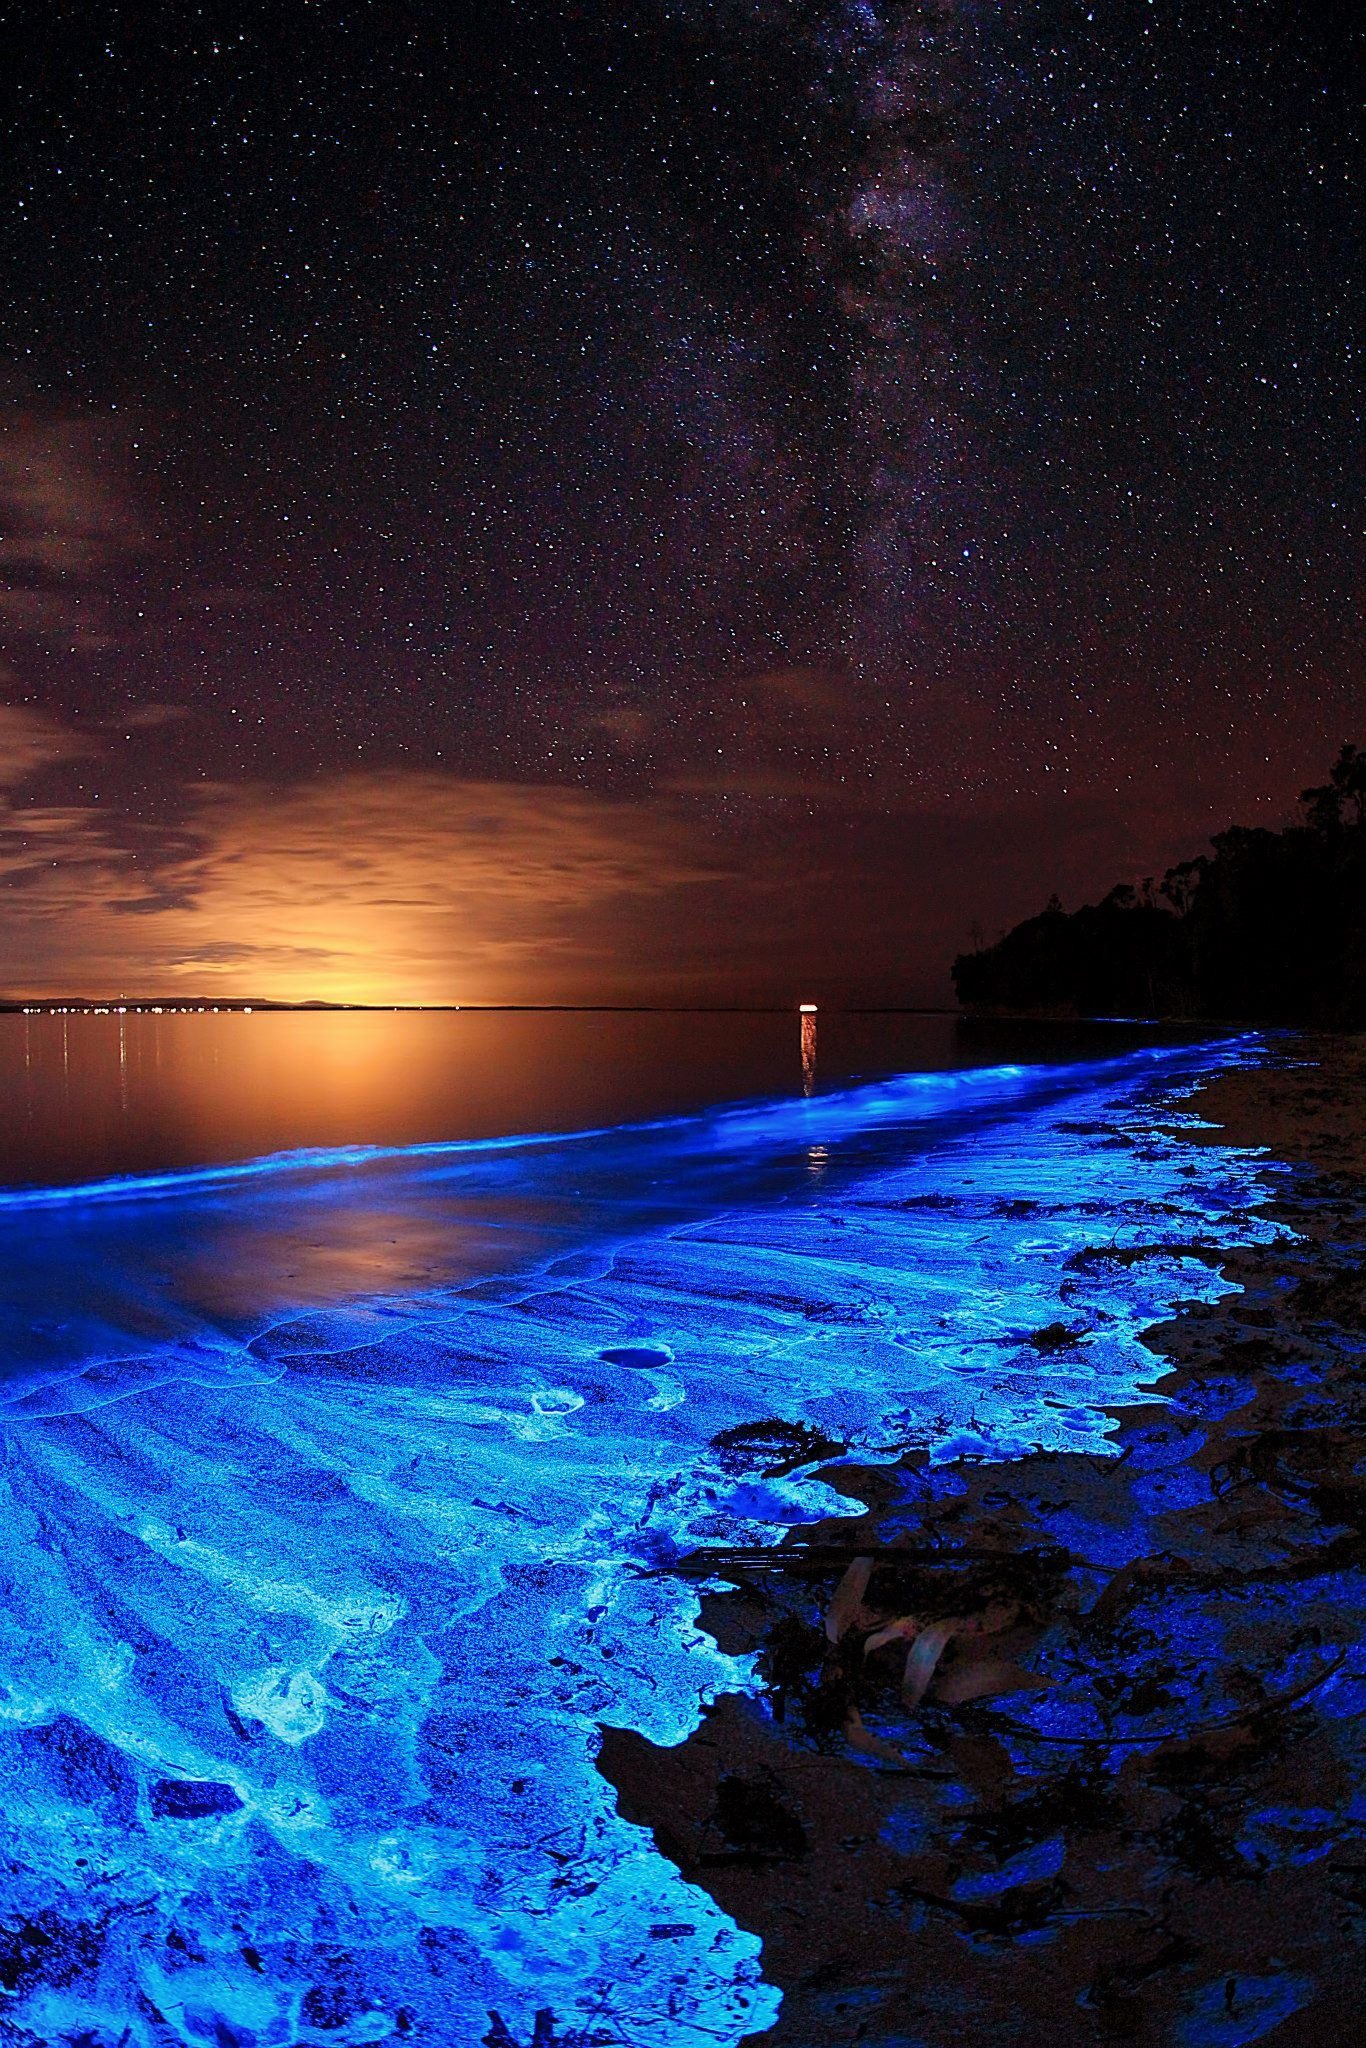 bioluminescent dinoflagellate (noctiluca scintillans), Jervis Bay, NSW, Australia   Joanne Paquette Photography